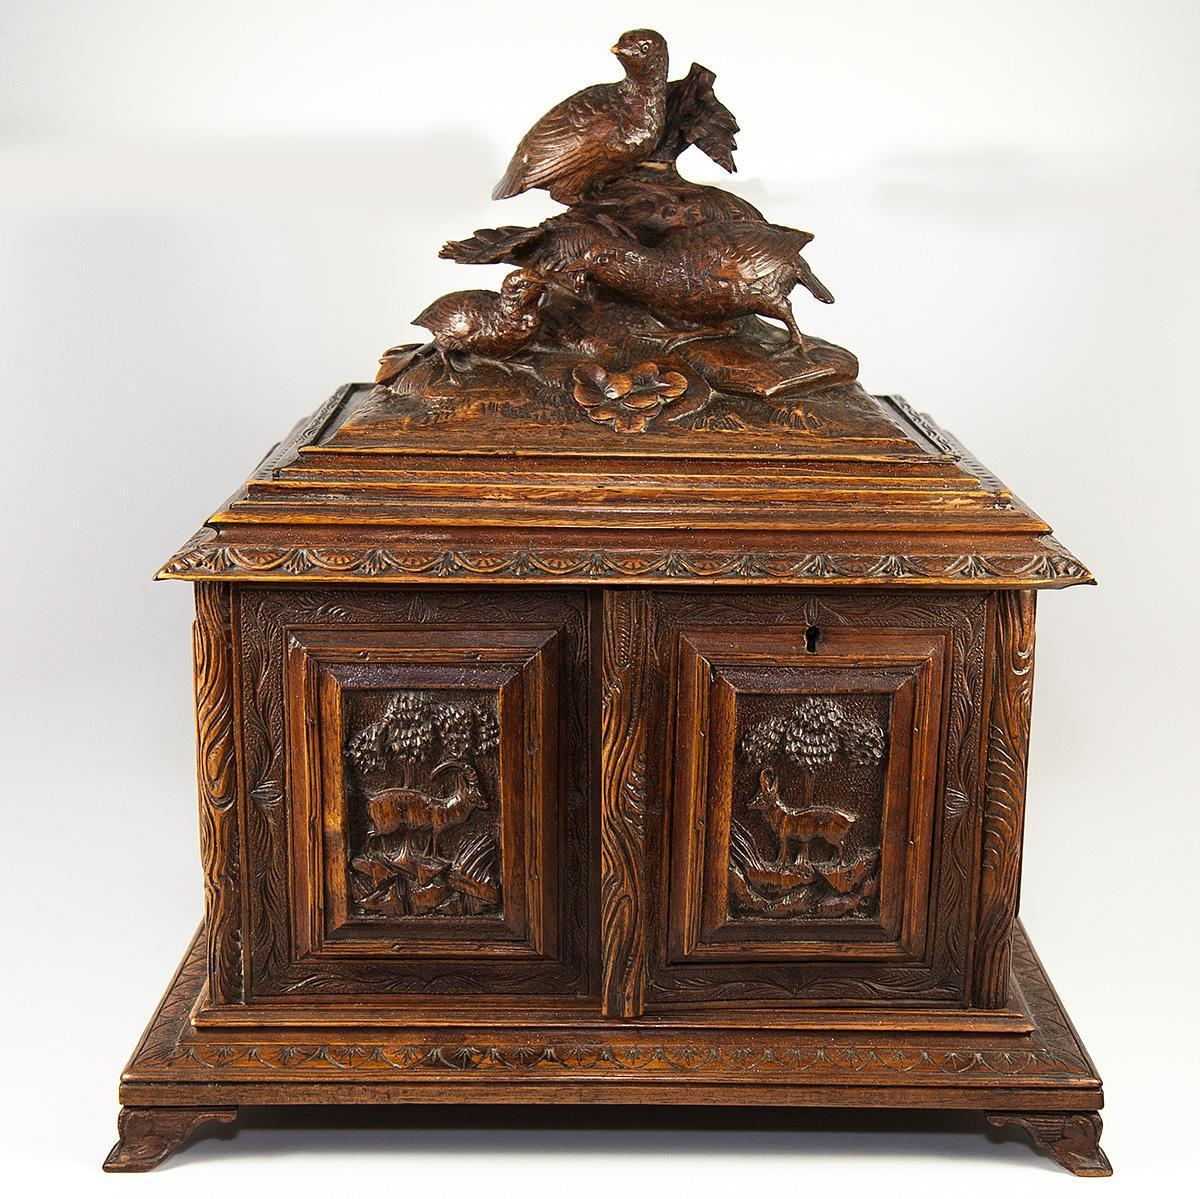 Superb Antique Black Forest Cigar Chest, Not Humidor, Presenter with Carved Game Birds, Hunt Plaques